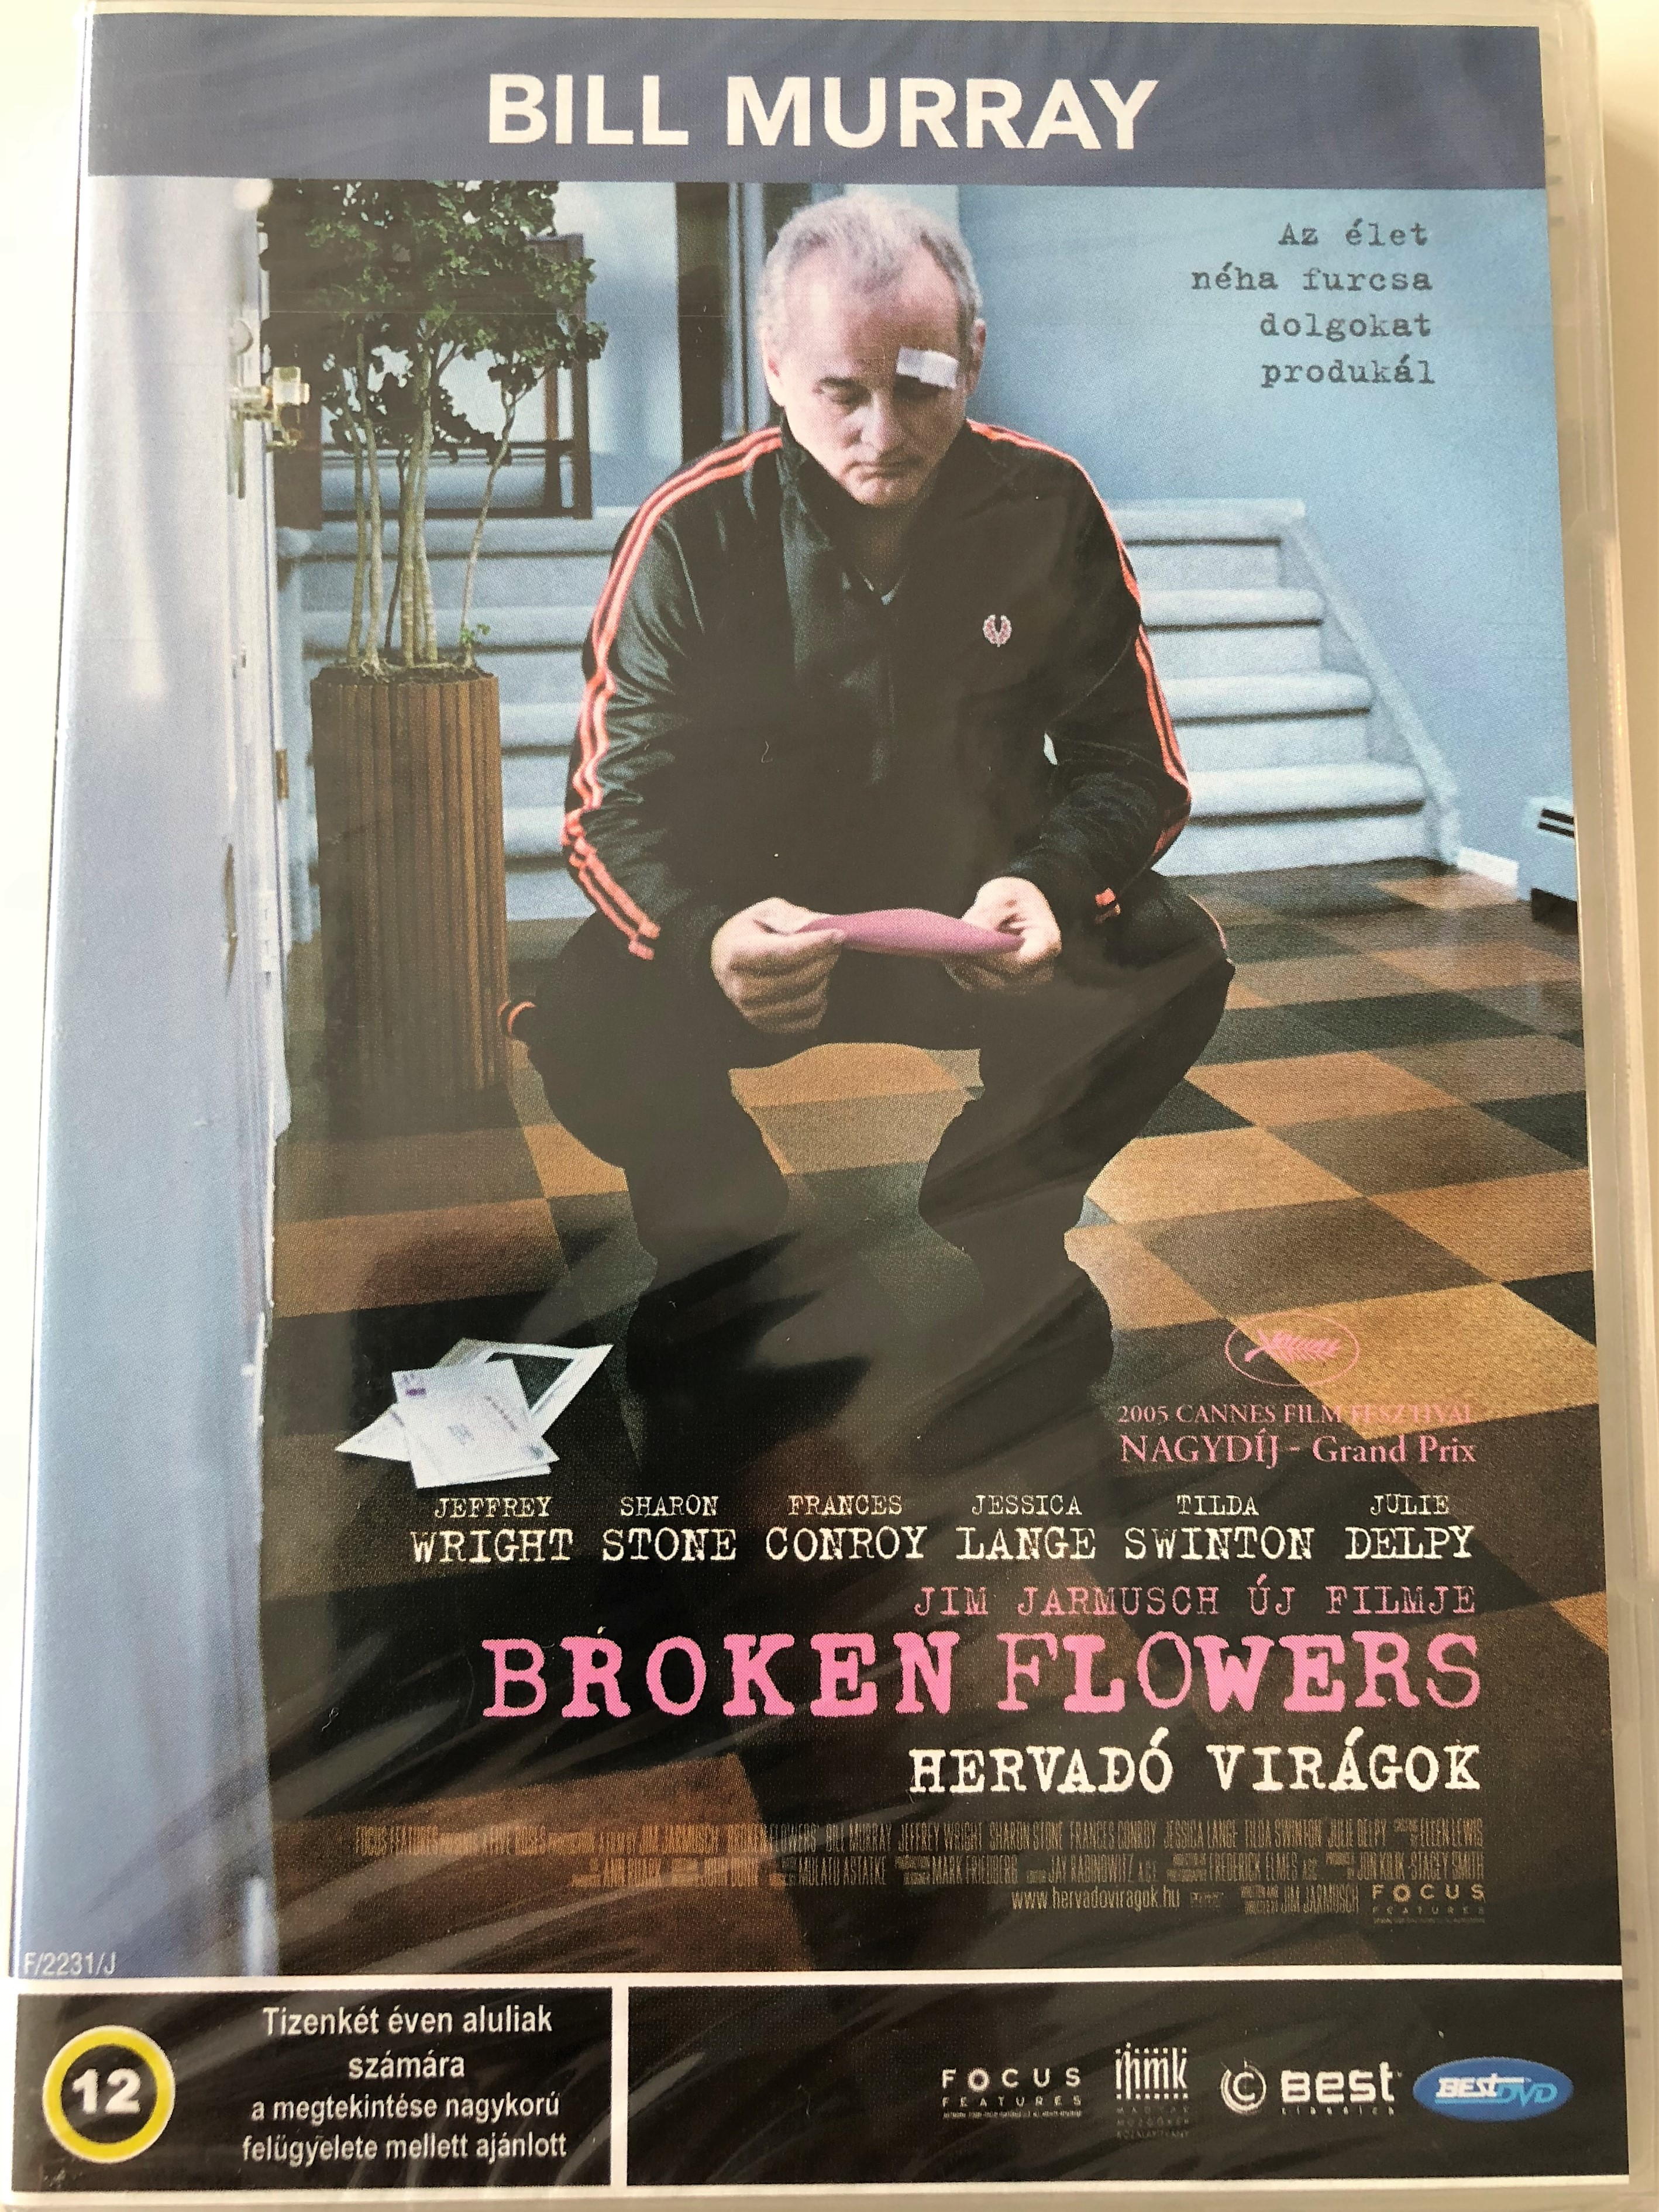 broken-flowers-dvd-2005-hervad-vir-gok-directed-by-jim-jarmush-starring-bill-murray-jeffrey-wright-sharon-stone-frances-conroy-jessica-lange-tilda-swinton-julie-delpy-mark-webber-chlo-sevigny-1-.jpg